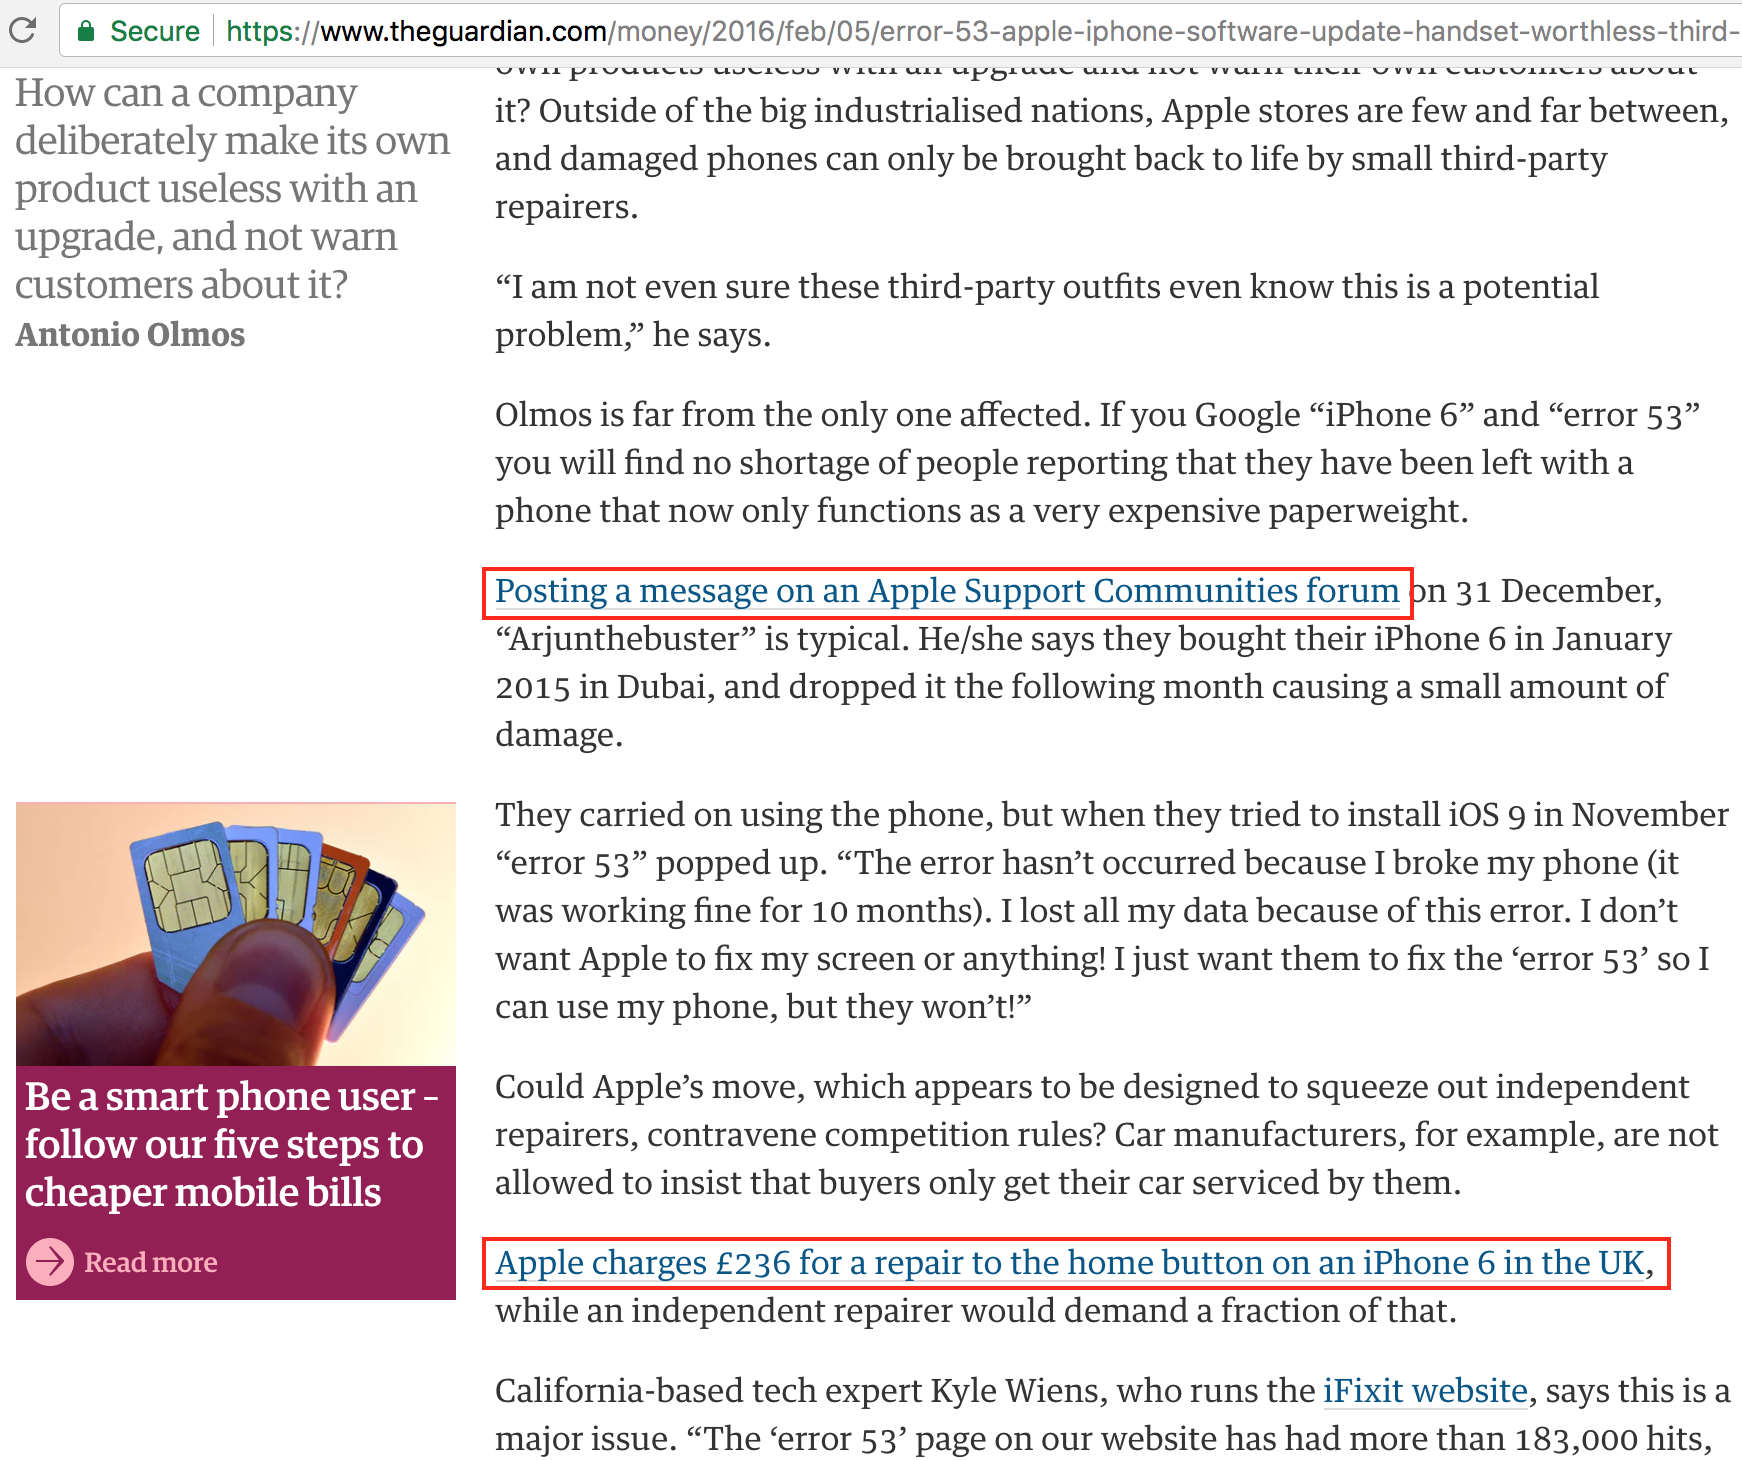 Screenshot showing an article about apple